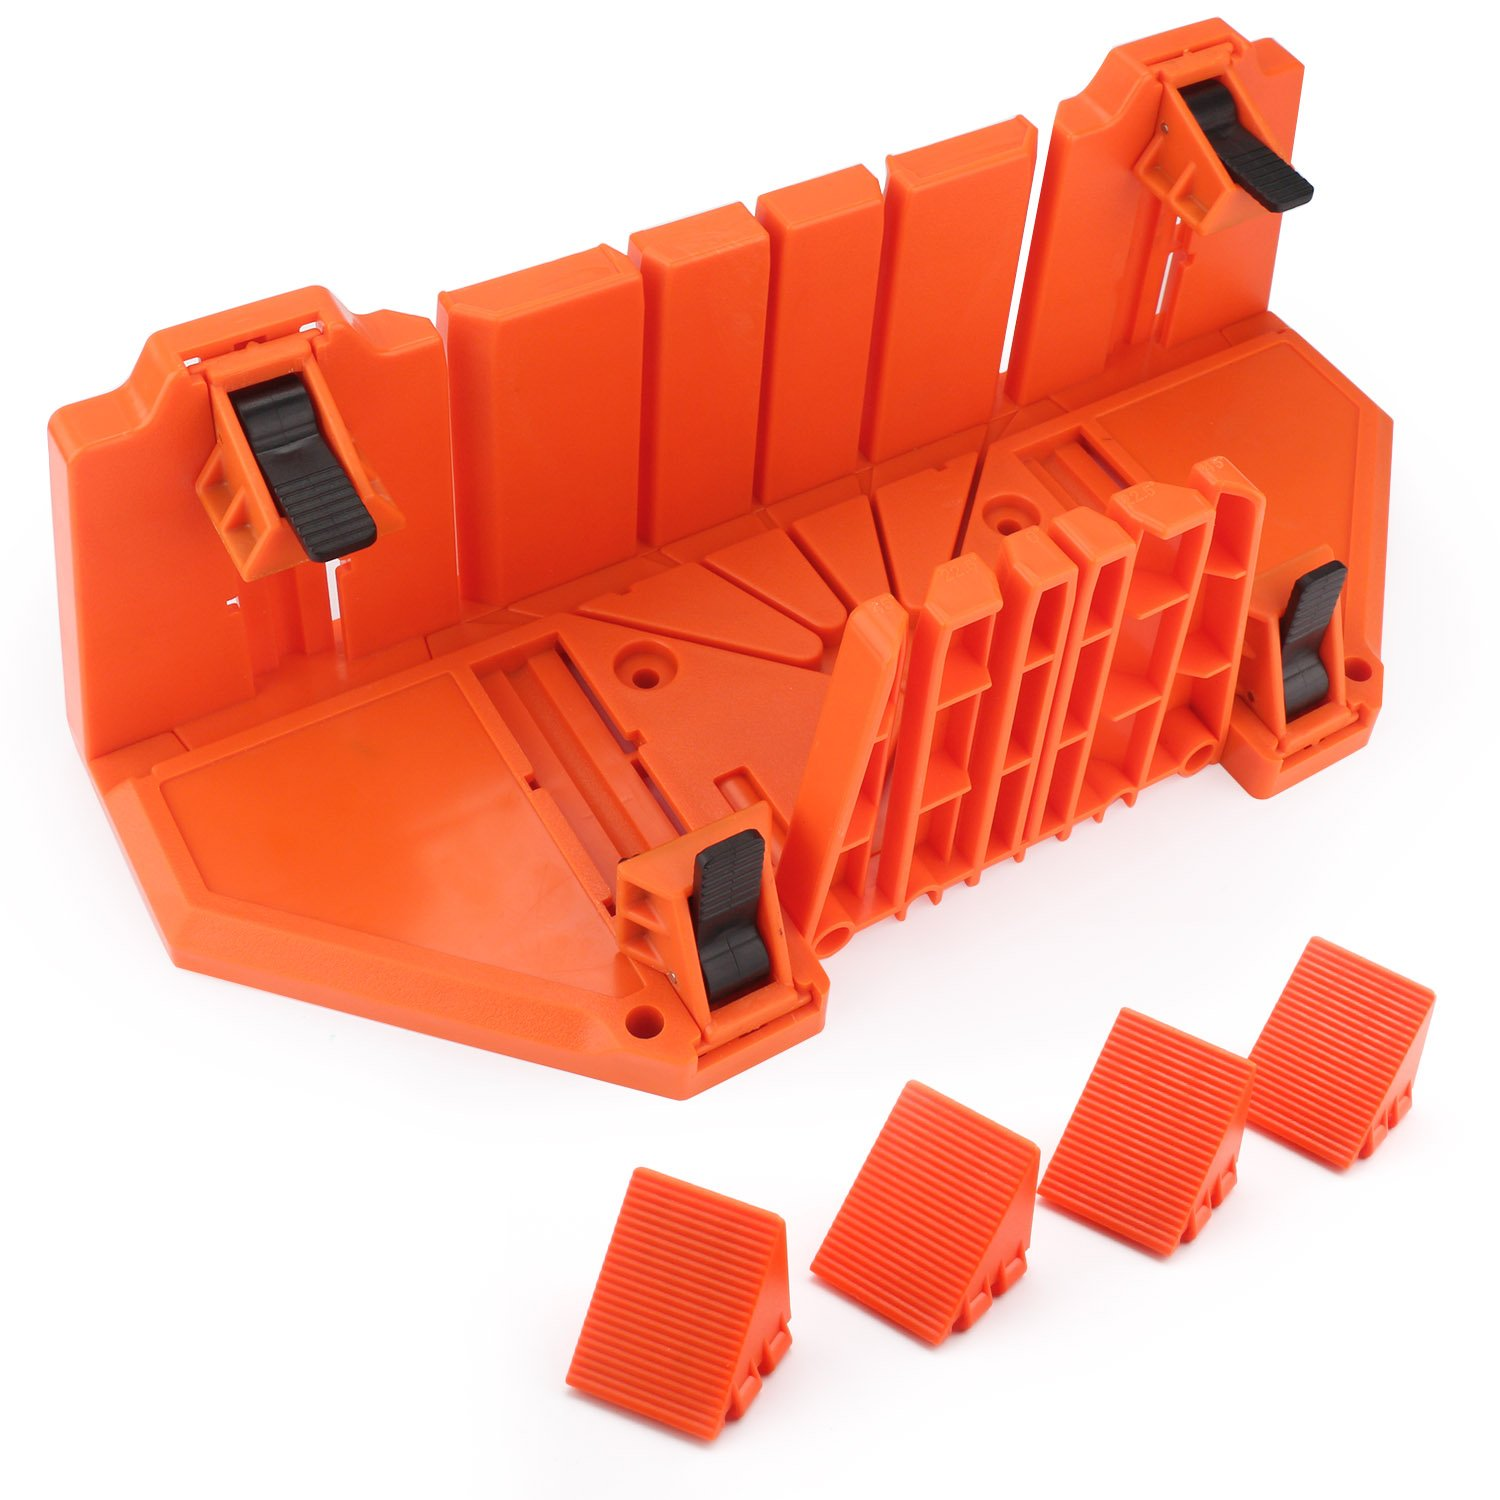 Clamping Mitre Box, EnPoint Woodworking Precision Mitre Box 12 Inch Plastic Mitre Saw Box Double Sided Teeth 0° 22.5° 45° Three Angle Slot Types Saw Box Craftsman Tool For Woodworker Woodcarver Carpen